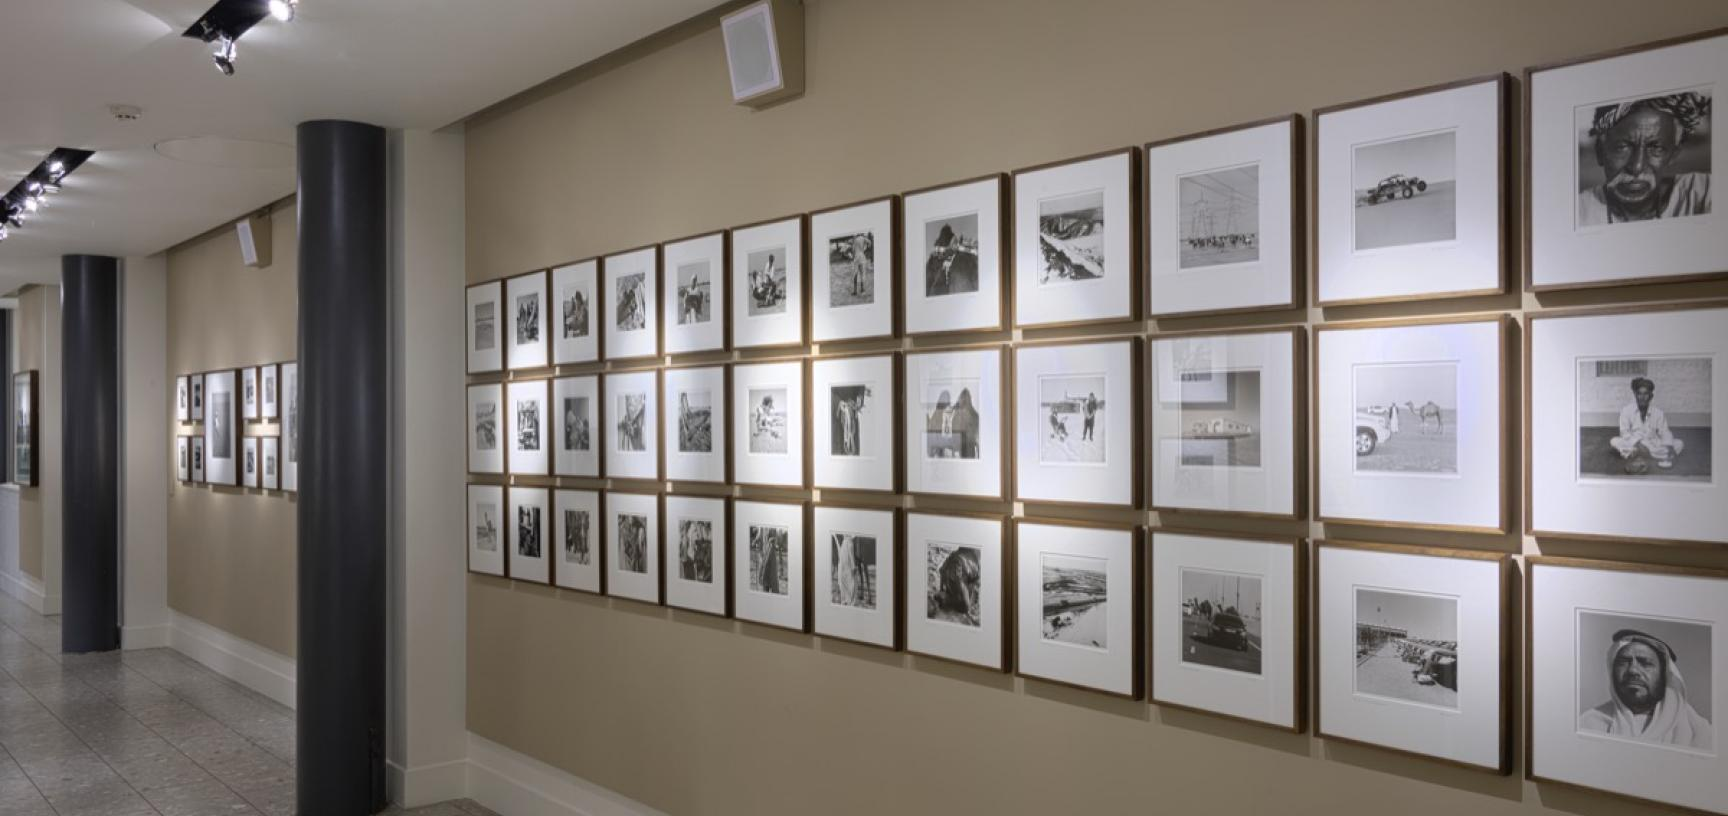 Display of black and white photographs on a wall